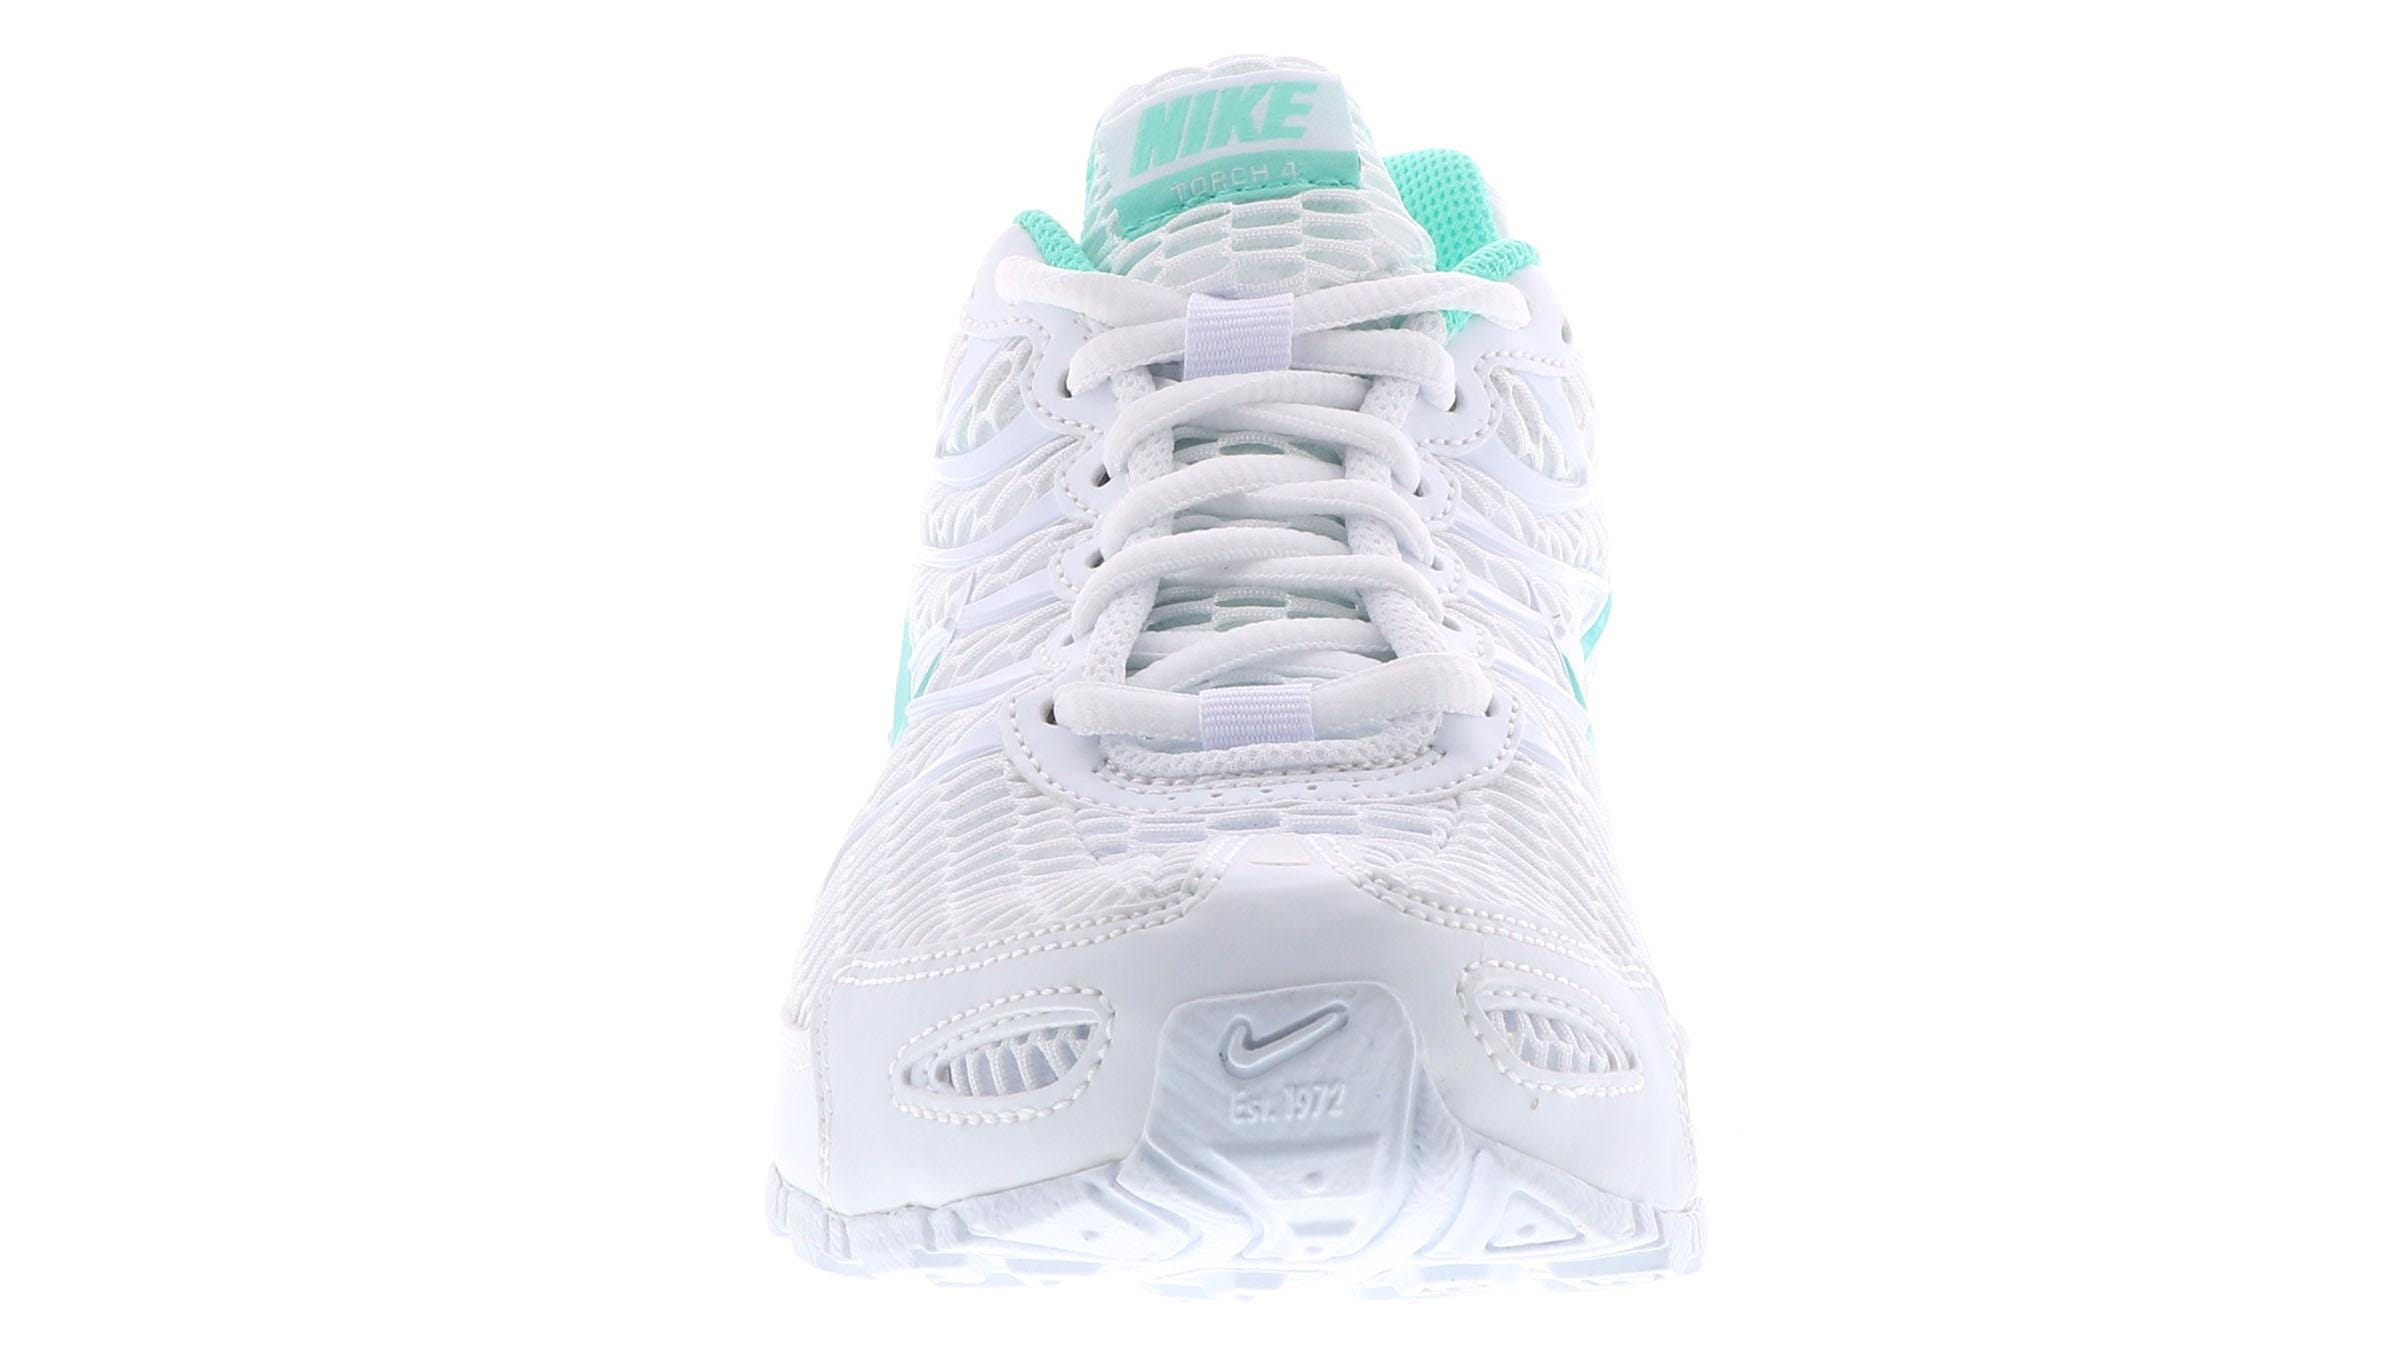 Womens Nike Air Max Torch 4 Running Shoes Sz 9 White Turquoise 343851 100